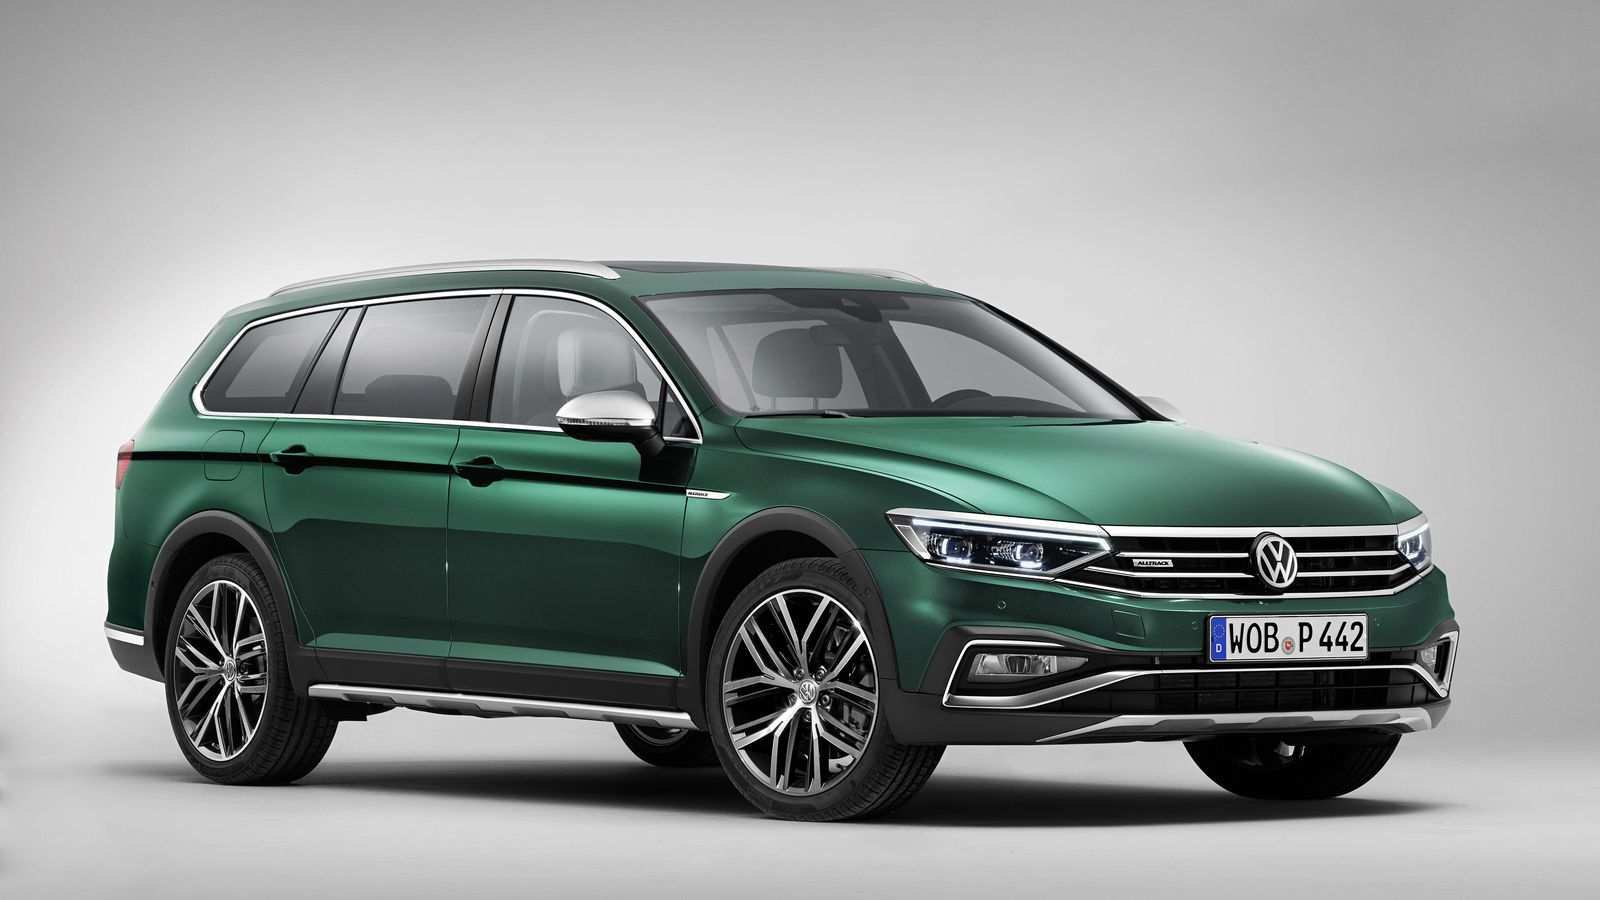 12 All New 2020 Volkswagen Passat Wagon New Concept